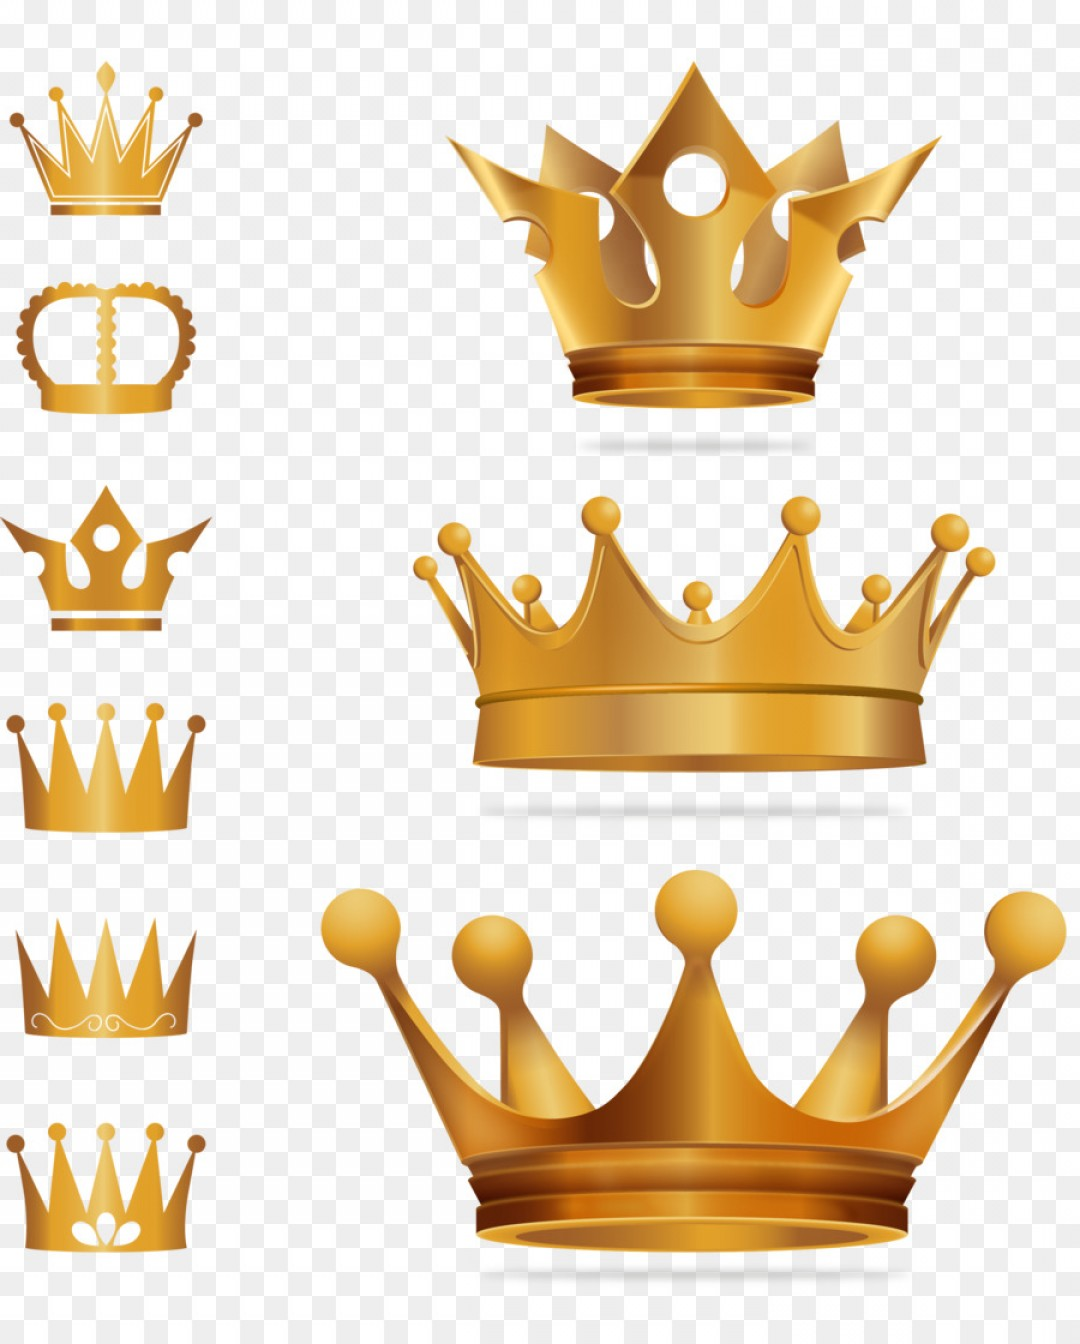 Transparent Queen Crown Vector: Png Crown Euclidean Vector Crown Vector